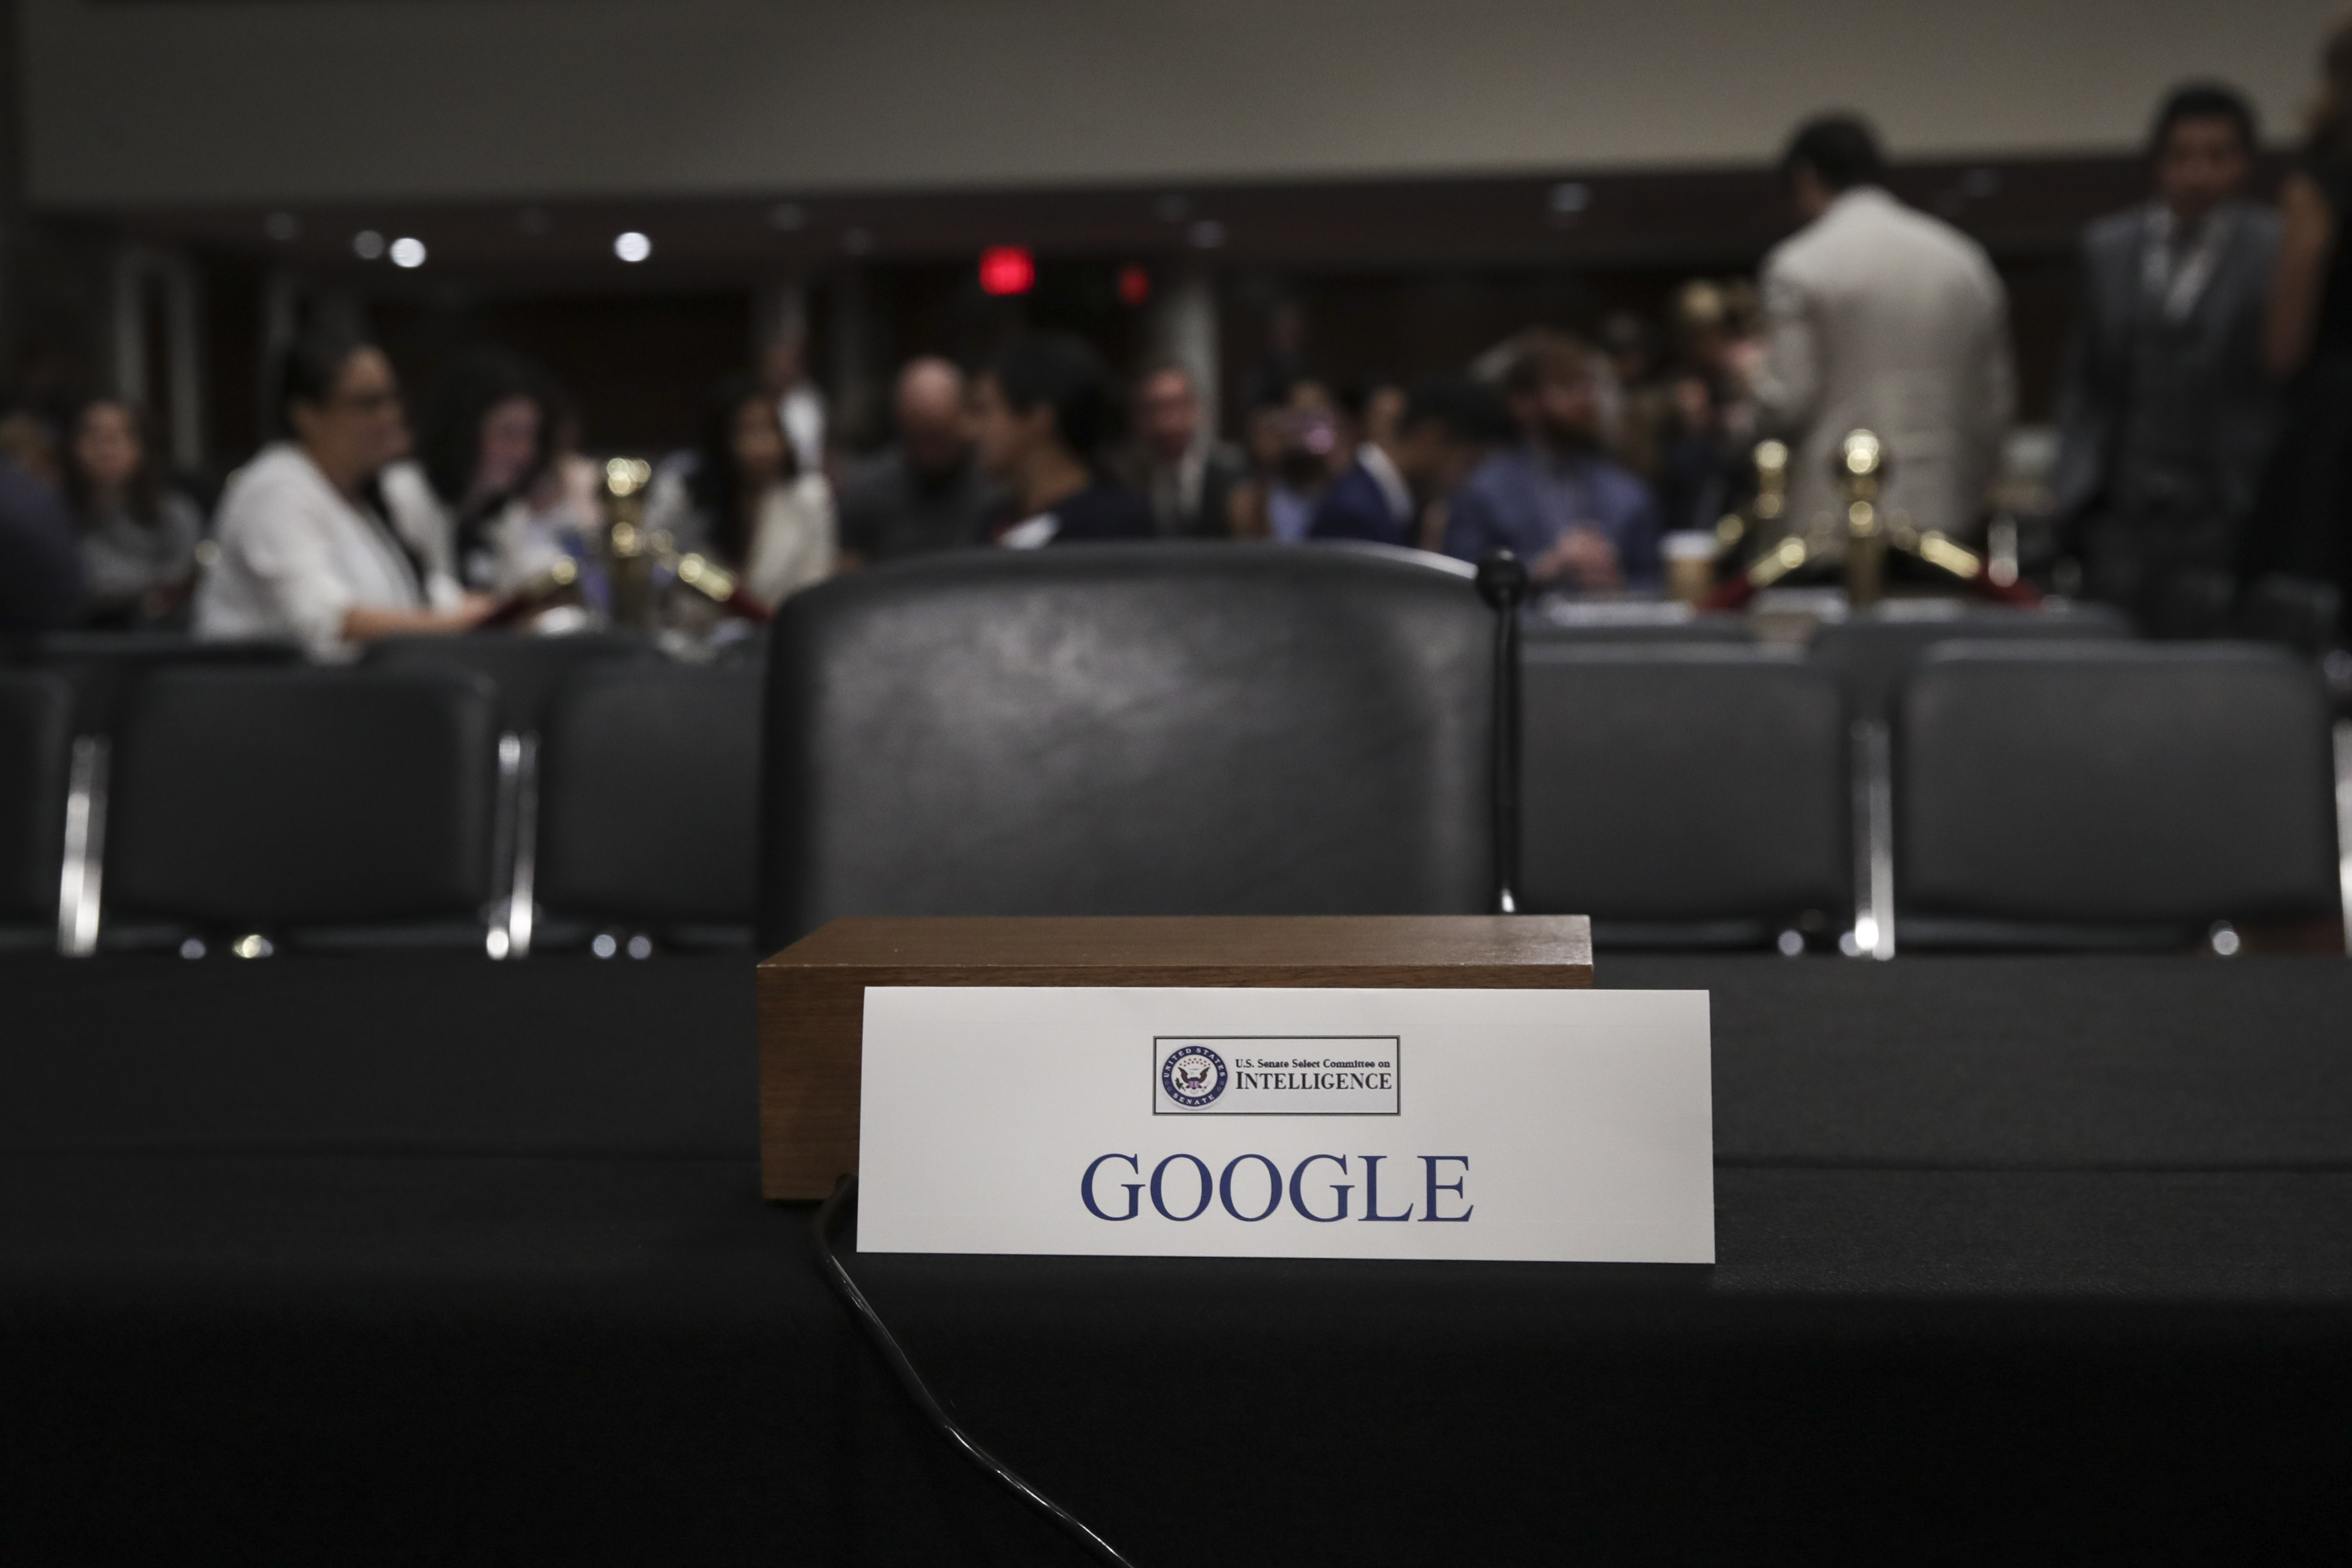 An empty seat for Google is seen during a Senate Intelligence Committee hearing concerning foreign influence operations' use of social media platforms, on Capitol Hill, September 5, 2018 in Washington, DC. (Photo by Drew Angerer/Getty Images)